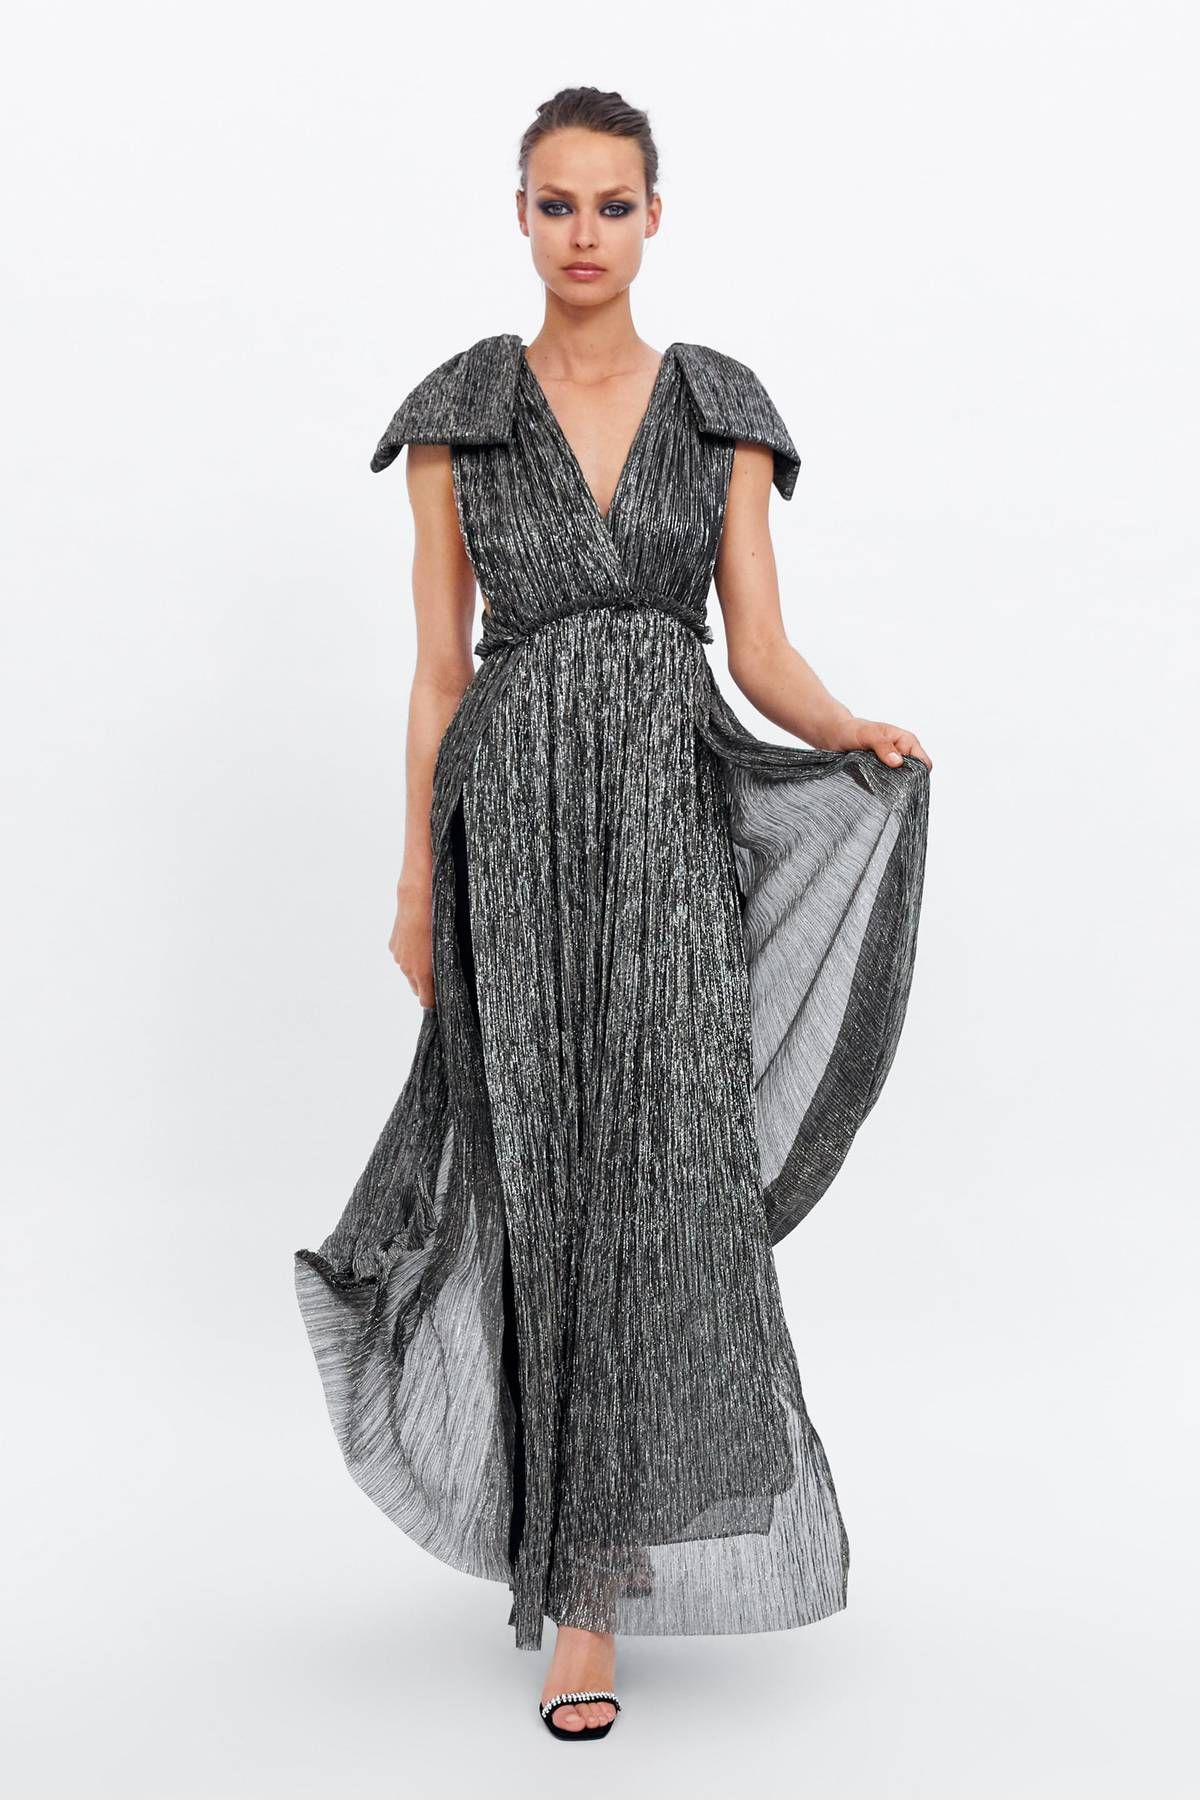 21 Extremely Fancy Dresses You D Never Guess Were From Zara Limited Edition Dress Best Evening Dresses Long Dresses Casual Maxi [ 1800 x 1200 Pixel ]